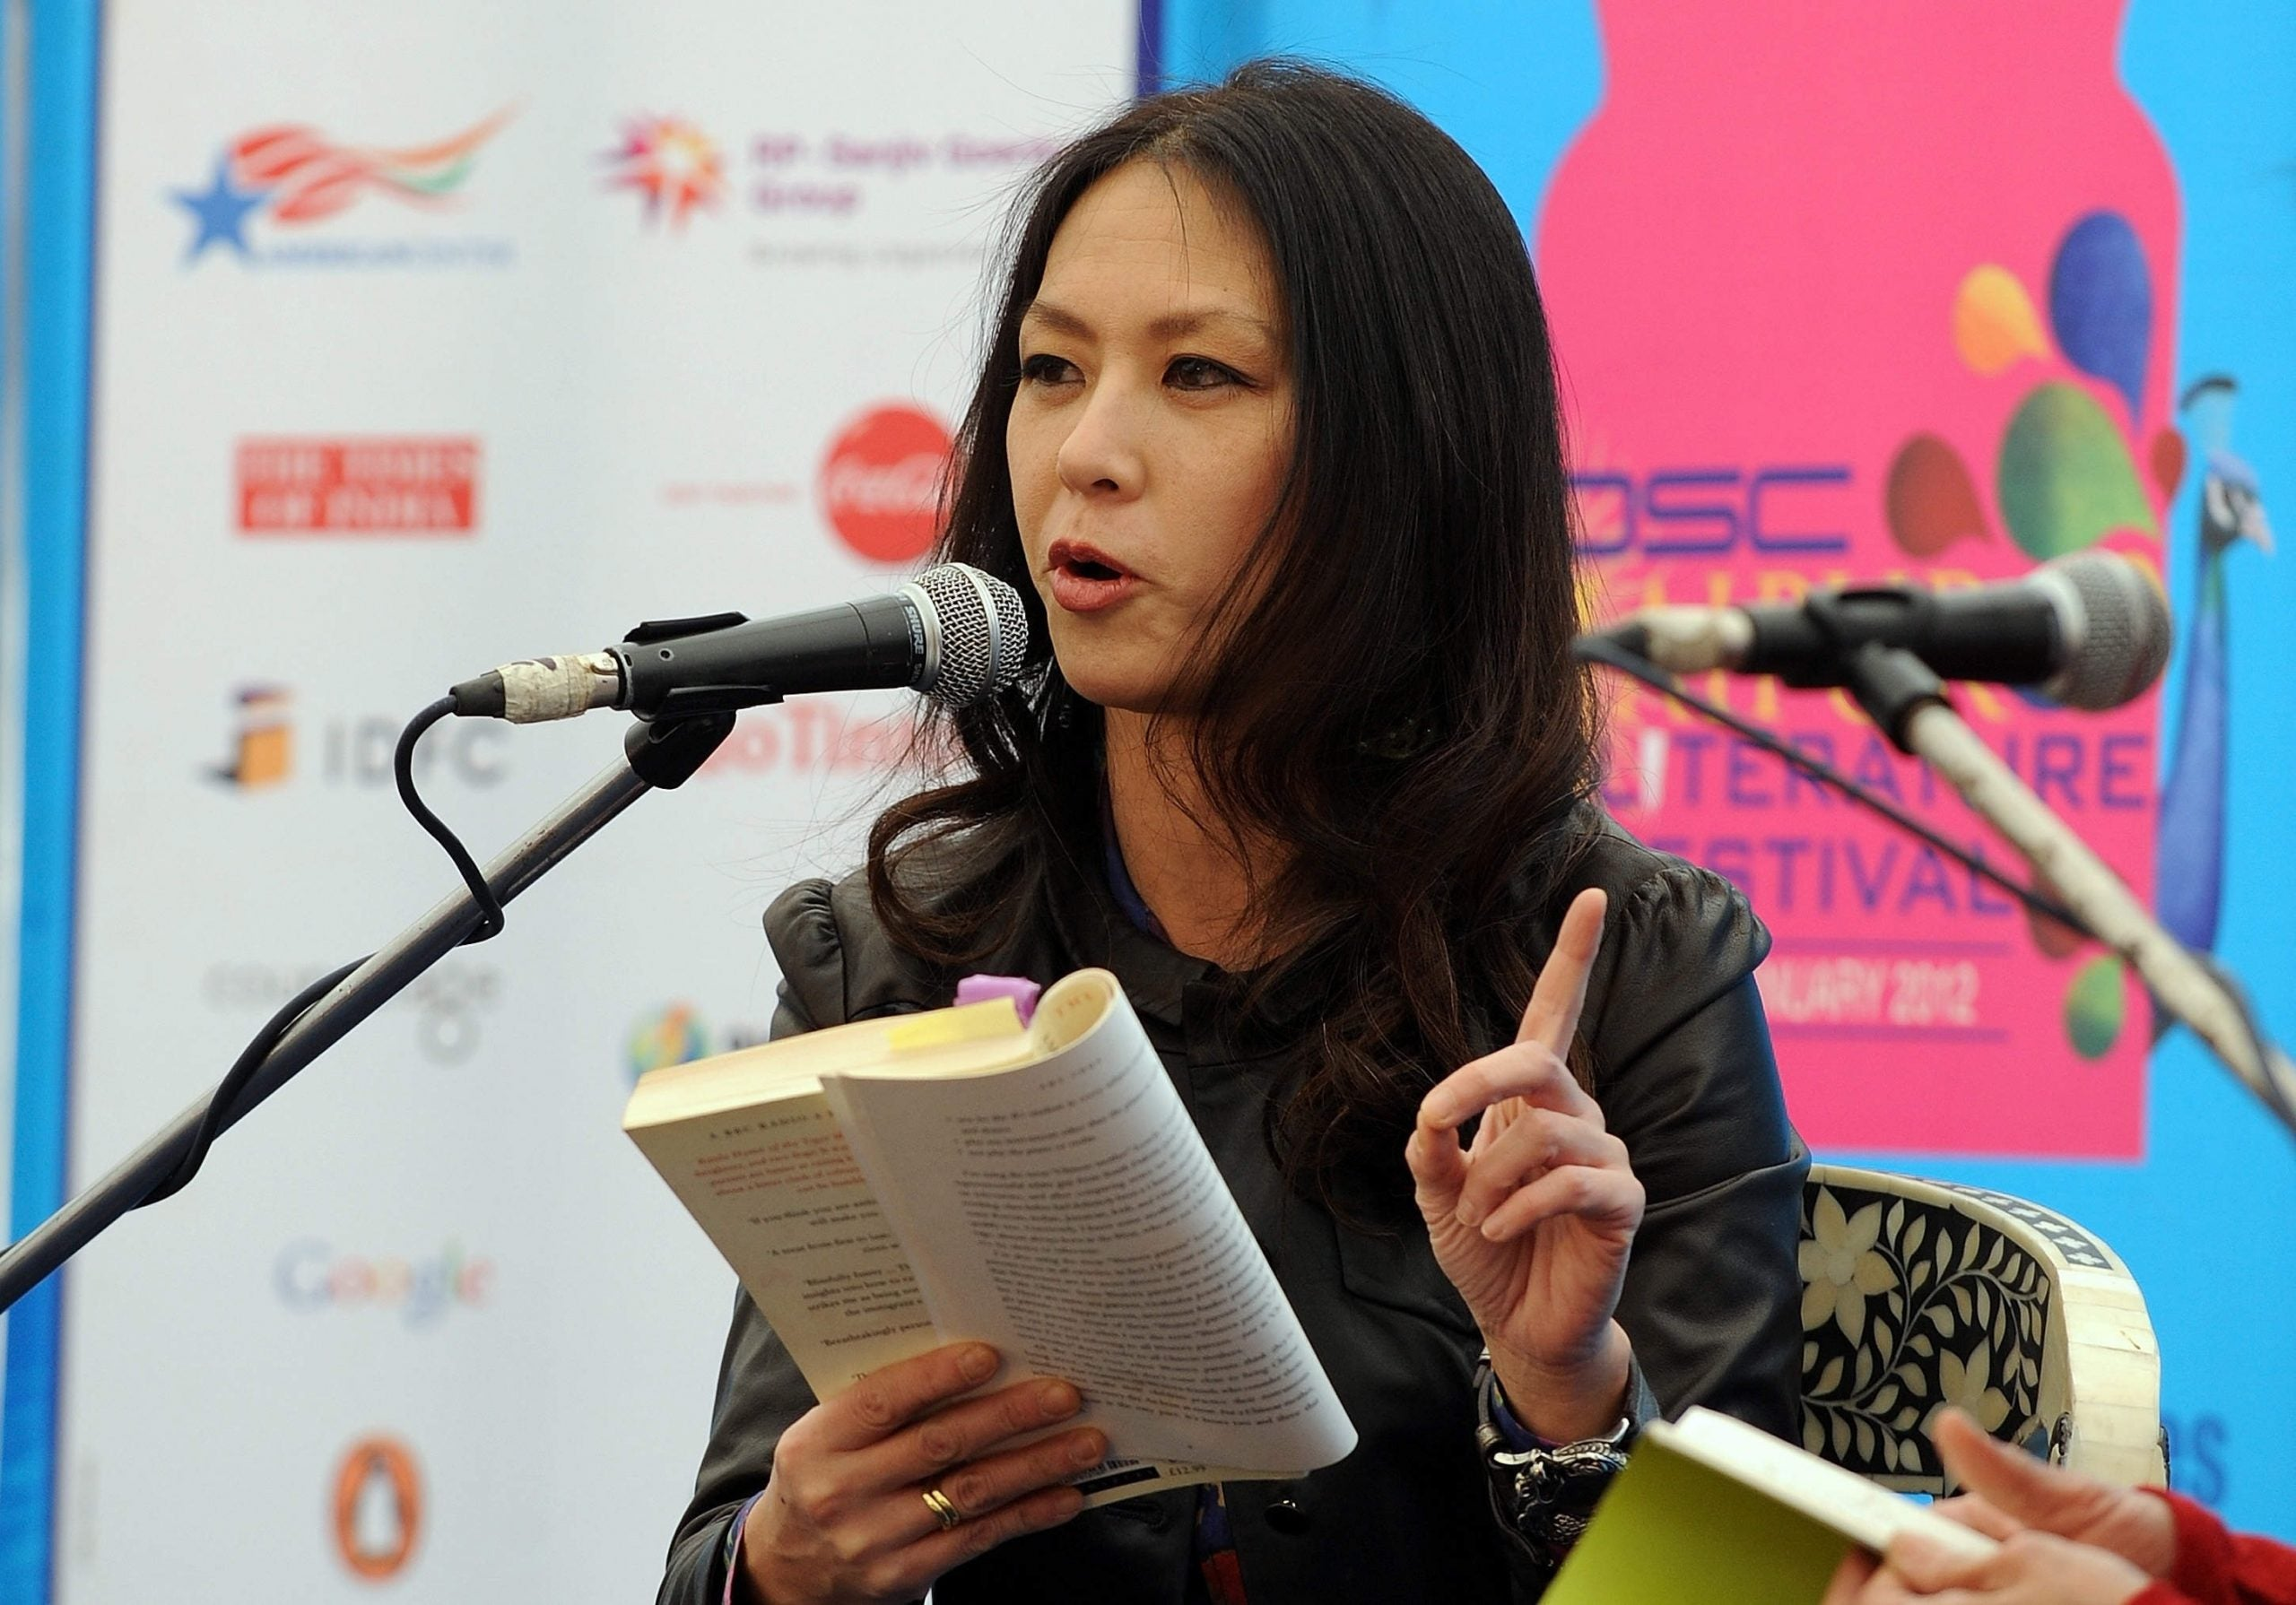 Playing the race card: the Triple Package by Amy Chua and Jed Rubenfeld